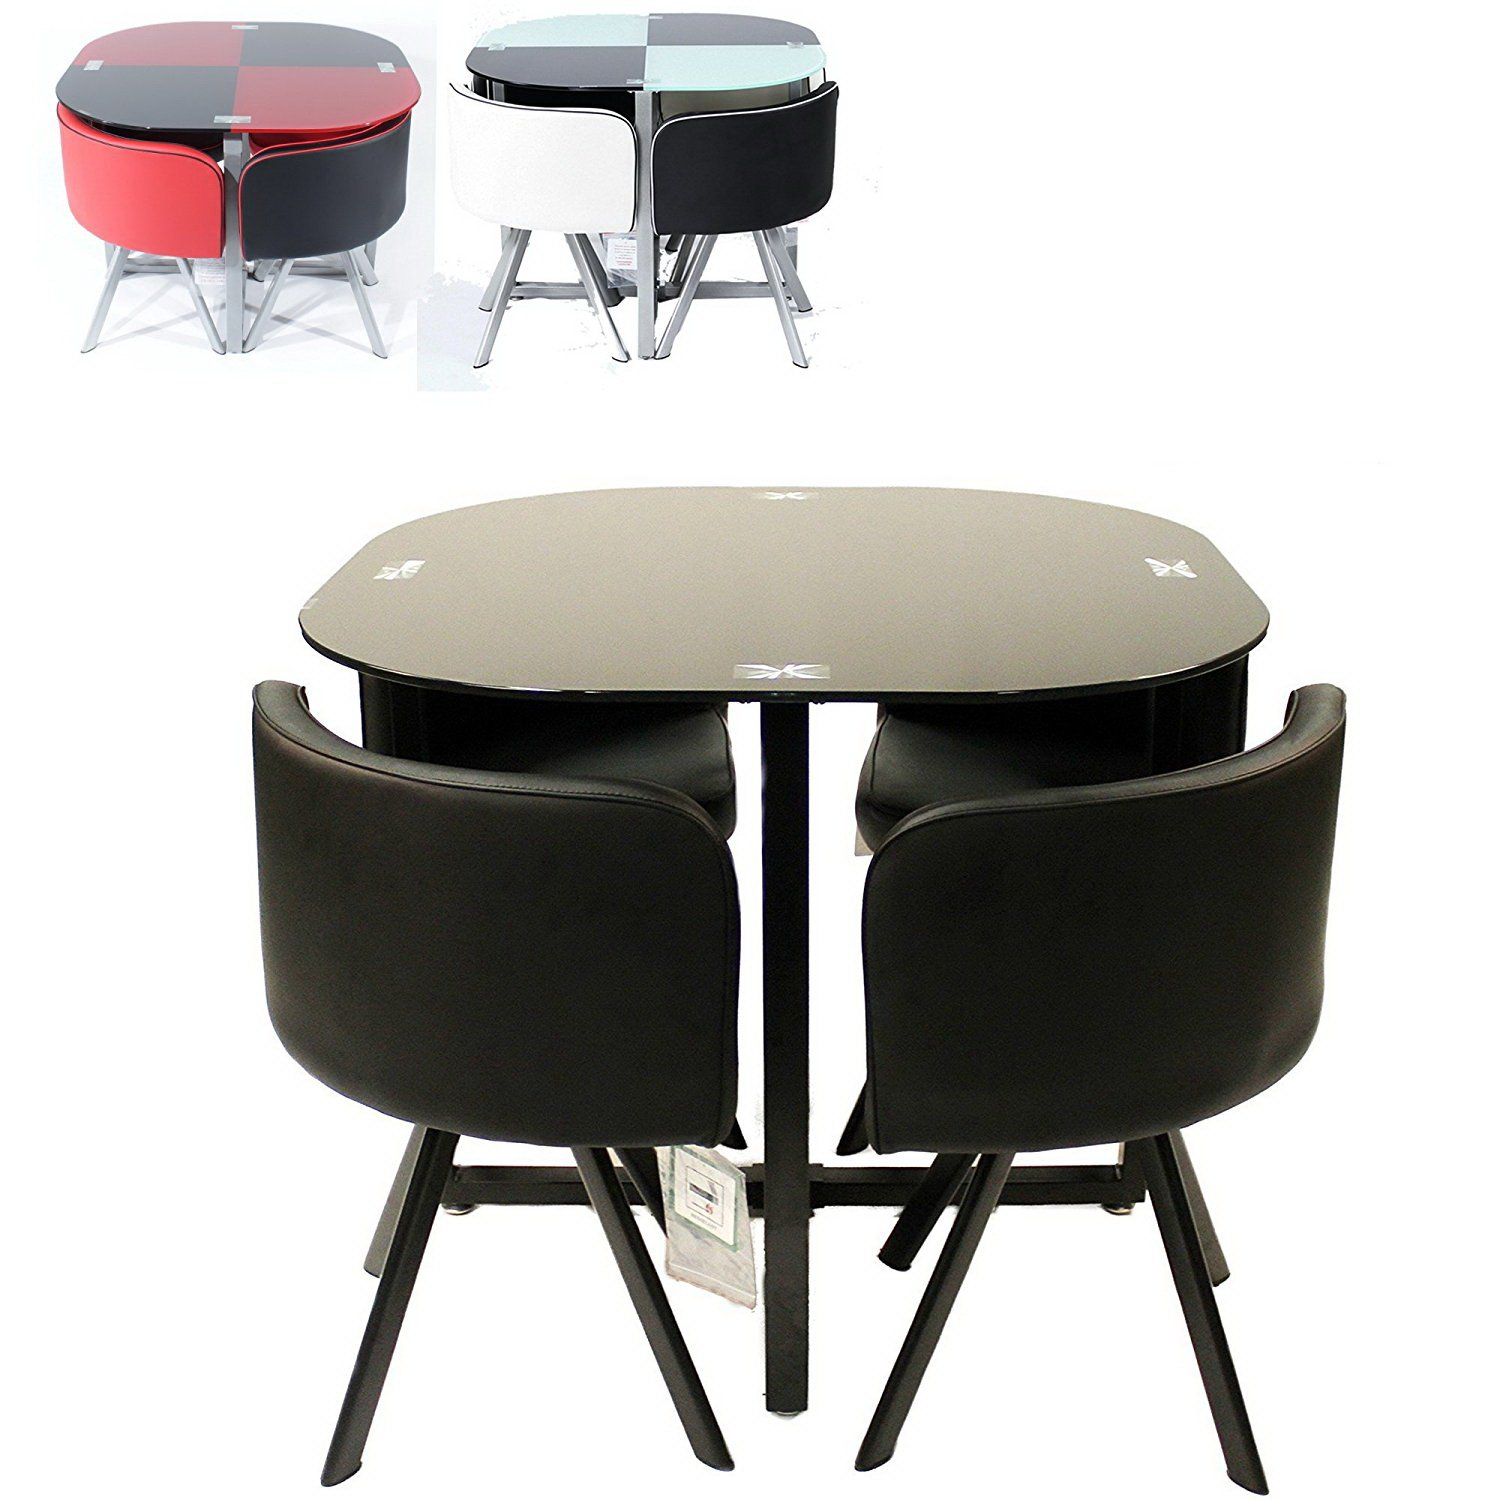 Stowaway kitchen table and stools set wow blog for Round space saving dining table and chairs